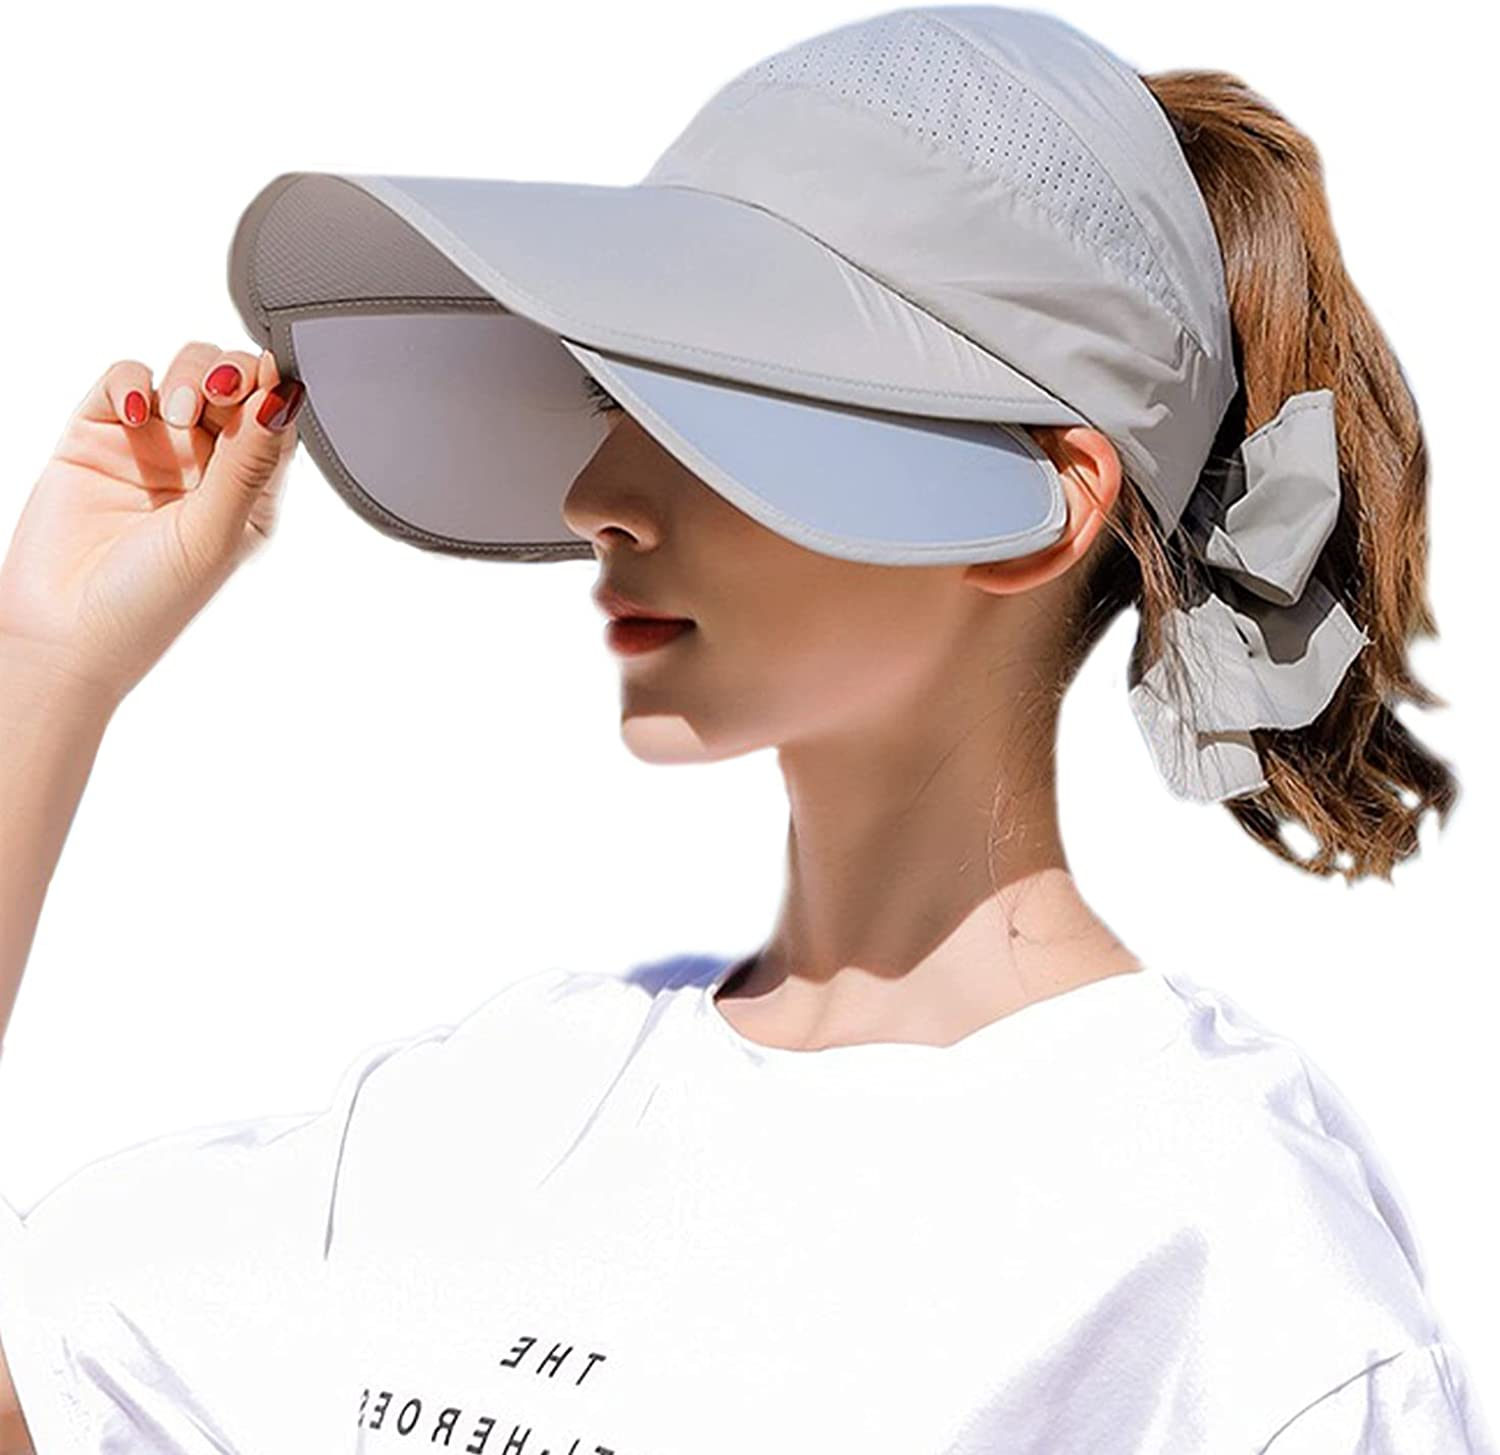 Peicees Wide Brim Inventory cleanup selling sale Visors for Store Women Sun Cap f Baseball Protection